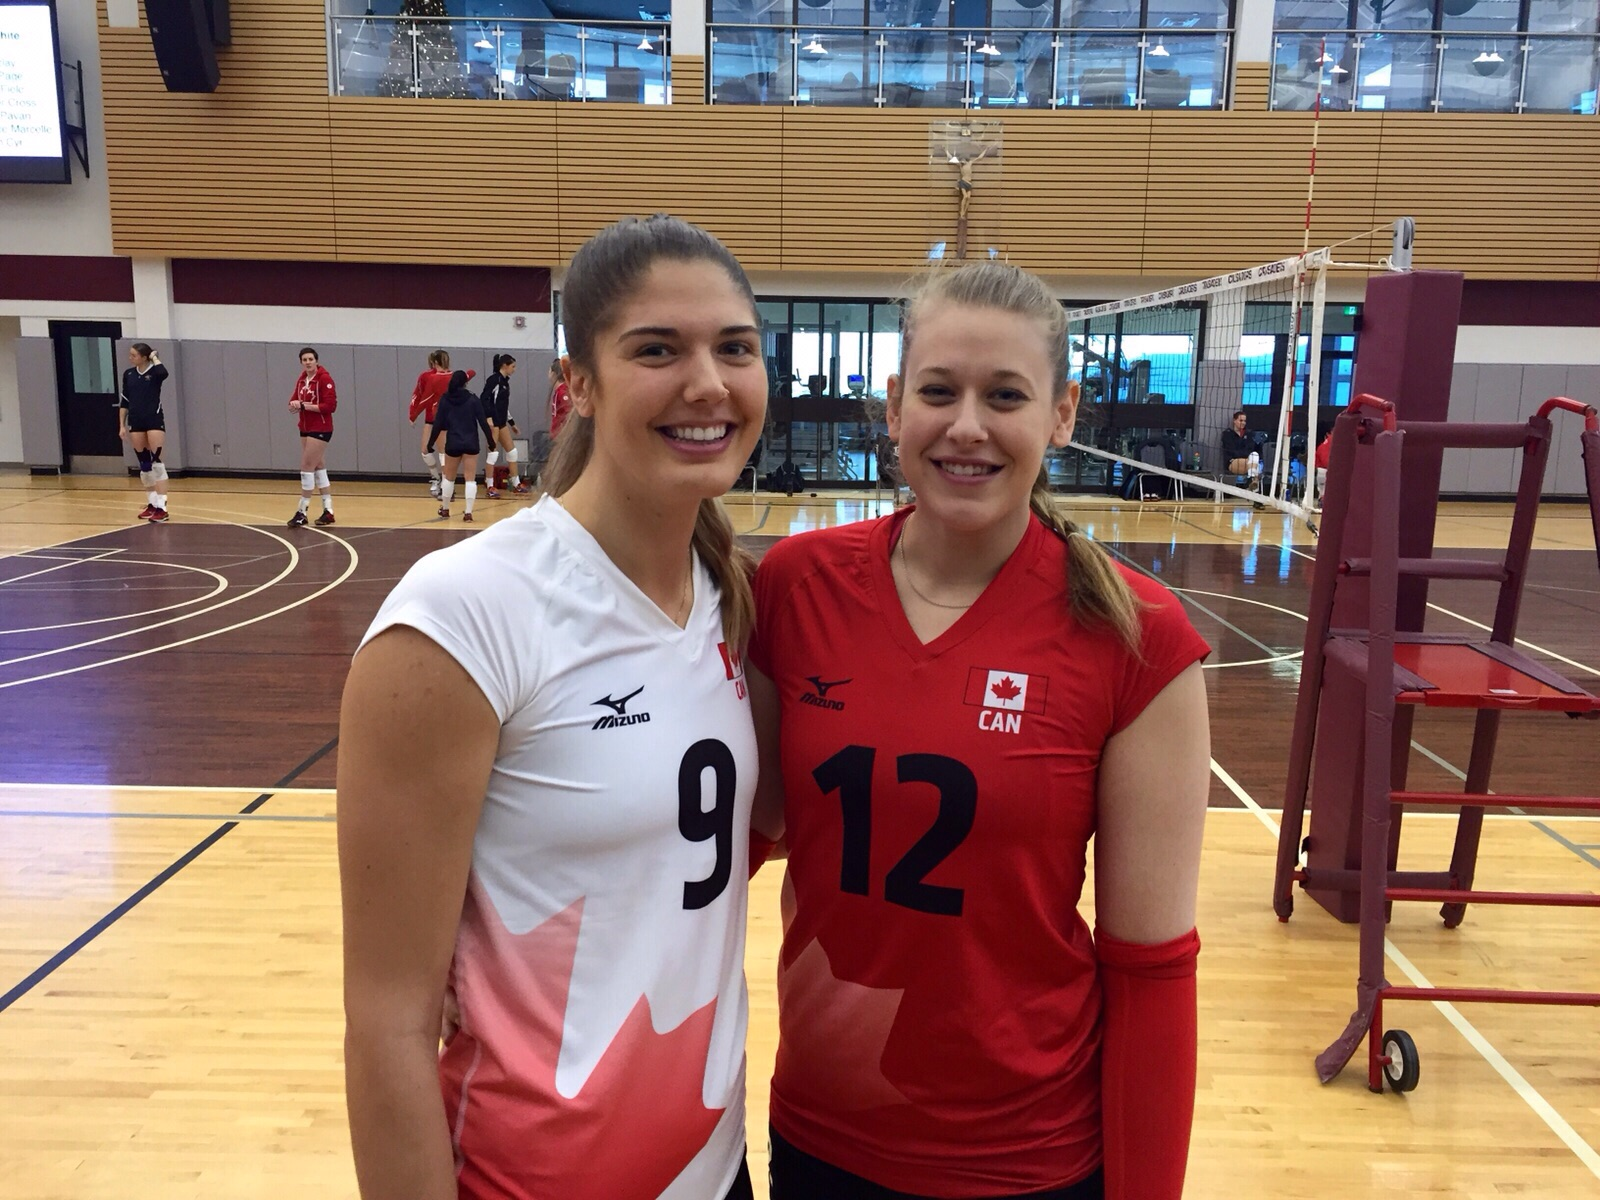 """I am really focused on helping Canada qualify for the Olympics in 4 years."" - Jen Cross (Right) with Canadian teammate Tabitha Love."